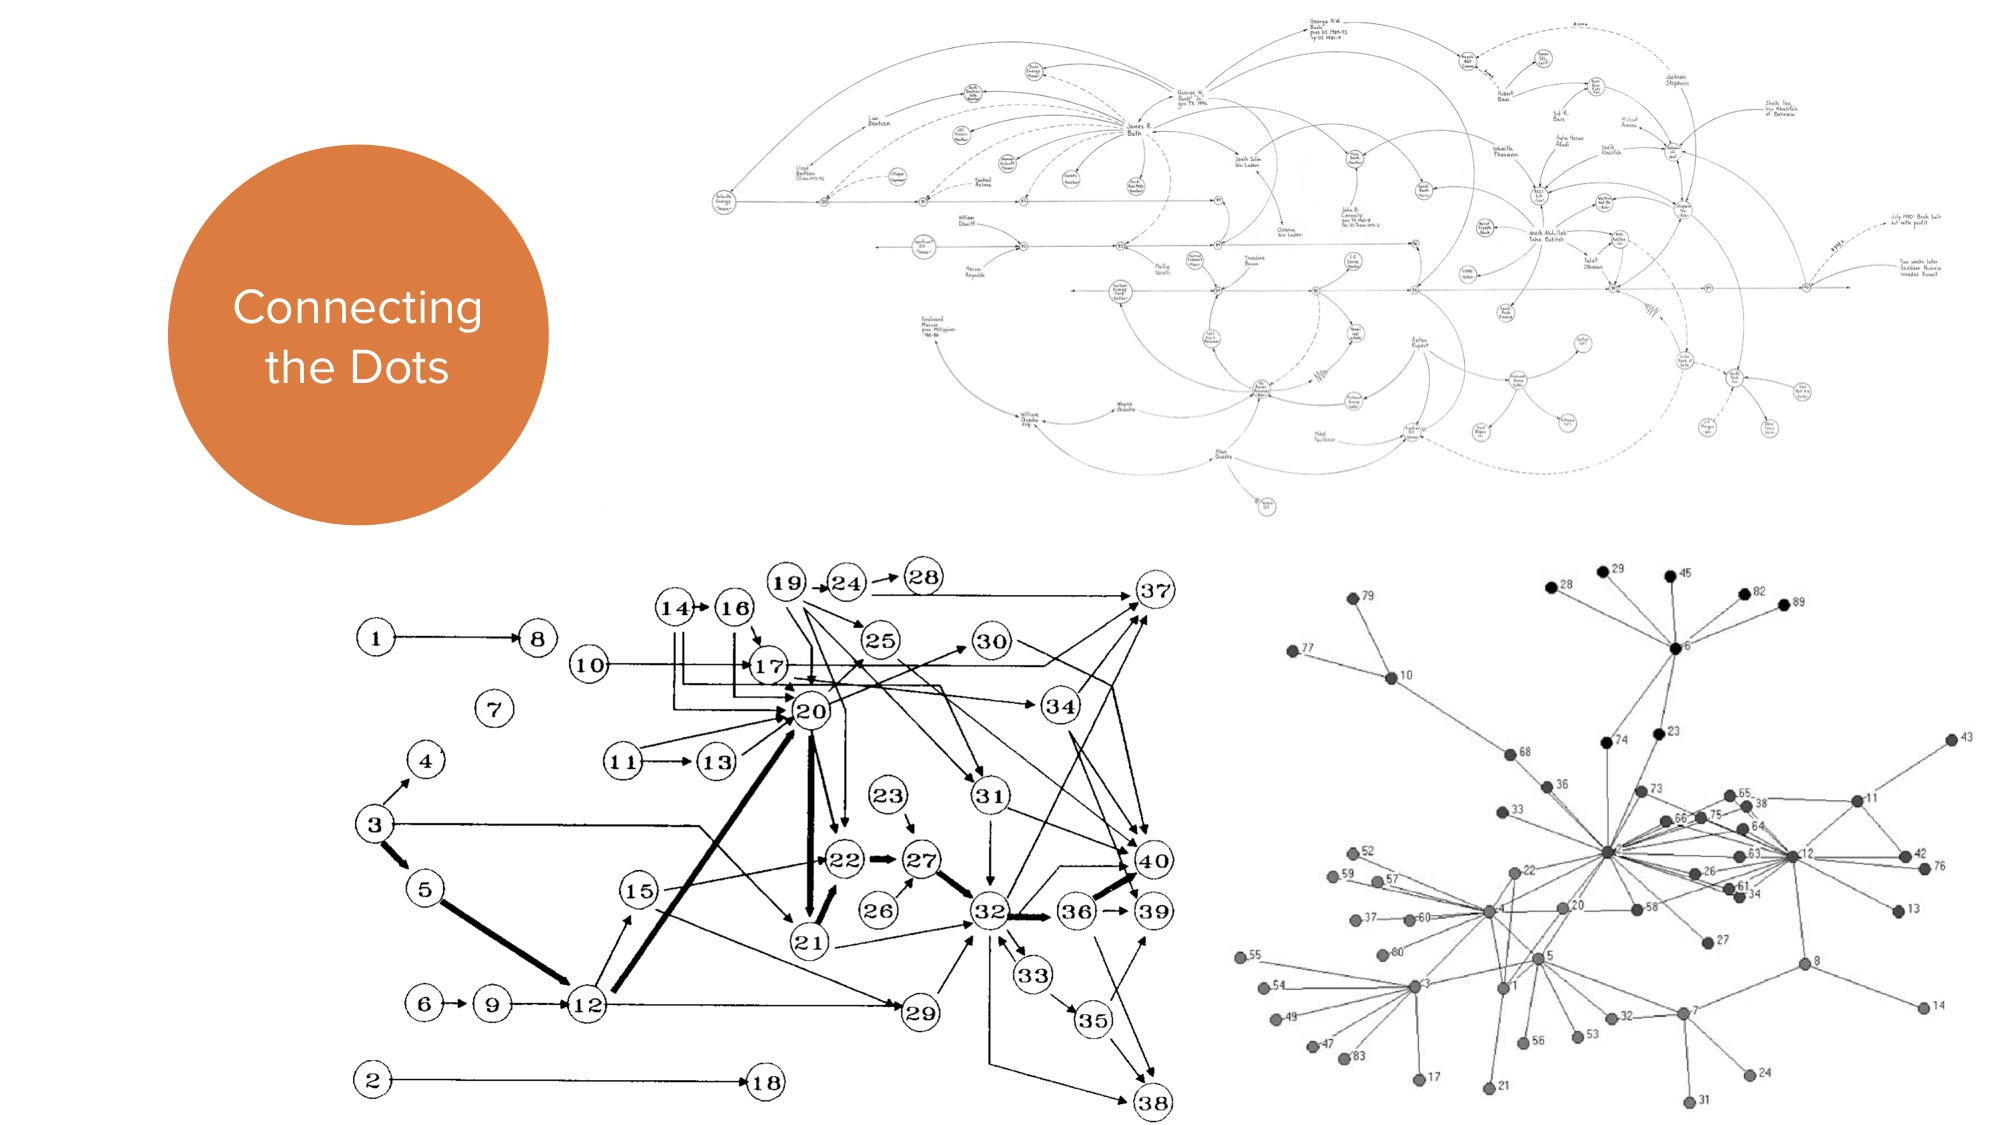 2014.10.17 - -How Are Ideas Connected- Drawing the Design Process of Idea Networks in Global Game Jam- - Meaningful Play 2014 5.jpeg